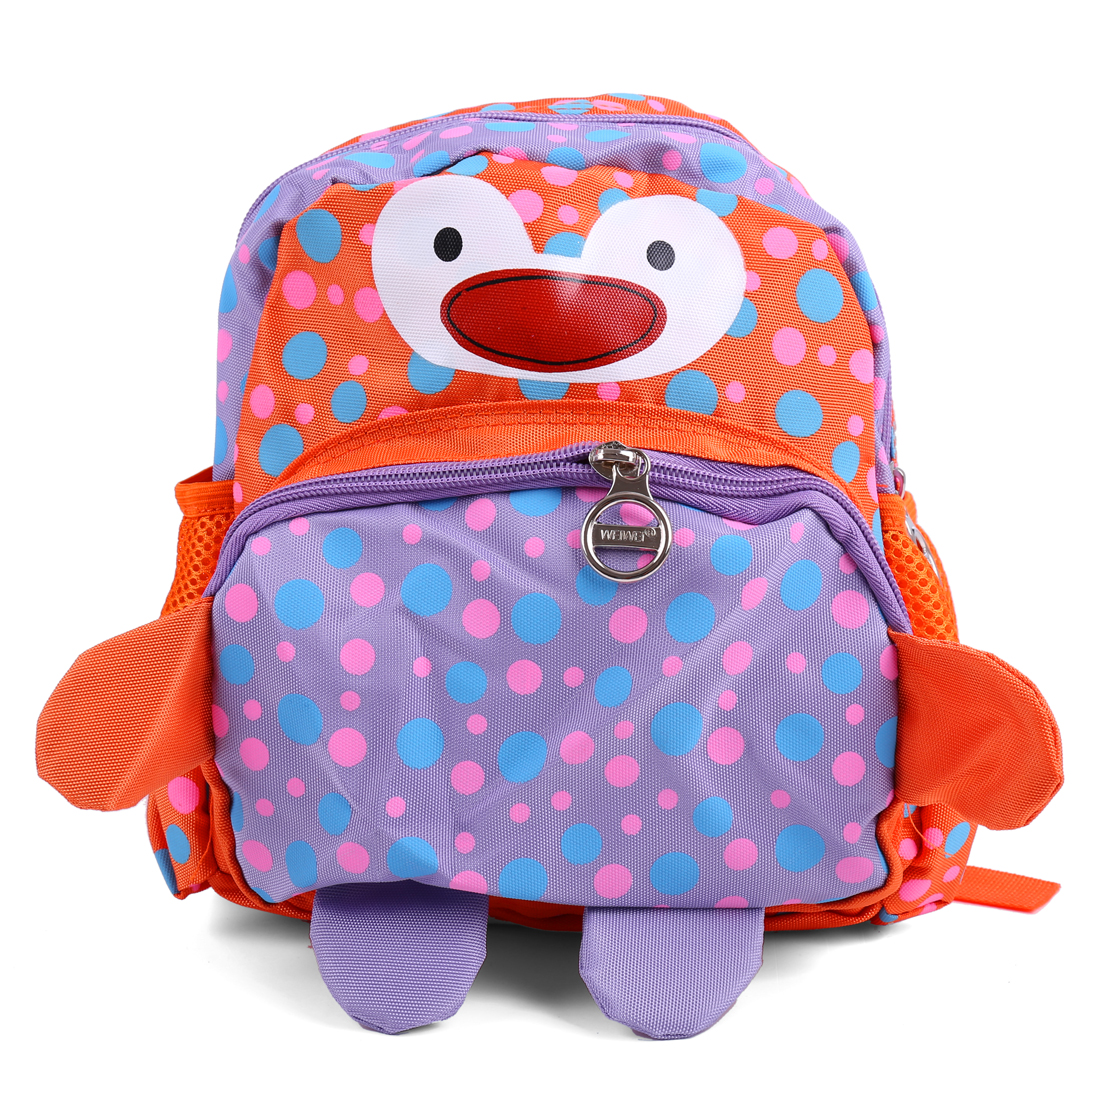 Kids Adjustable Straps Dots Cartoon Backpacks Orange Lilac